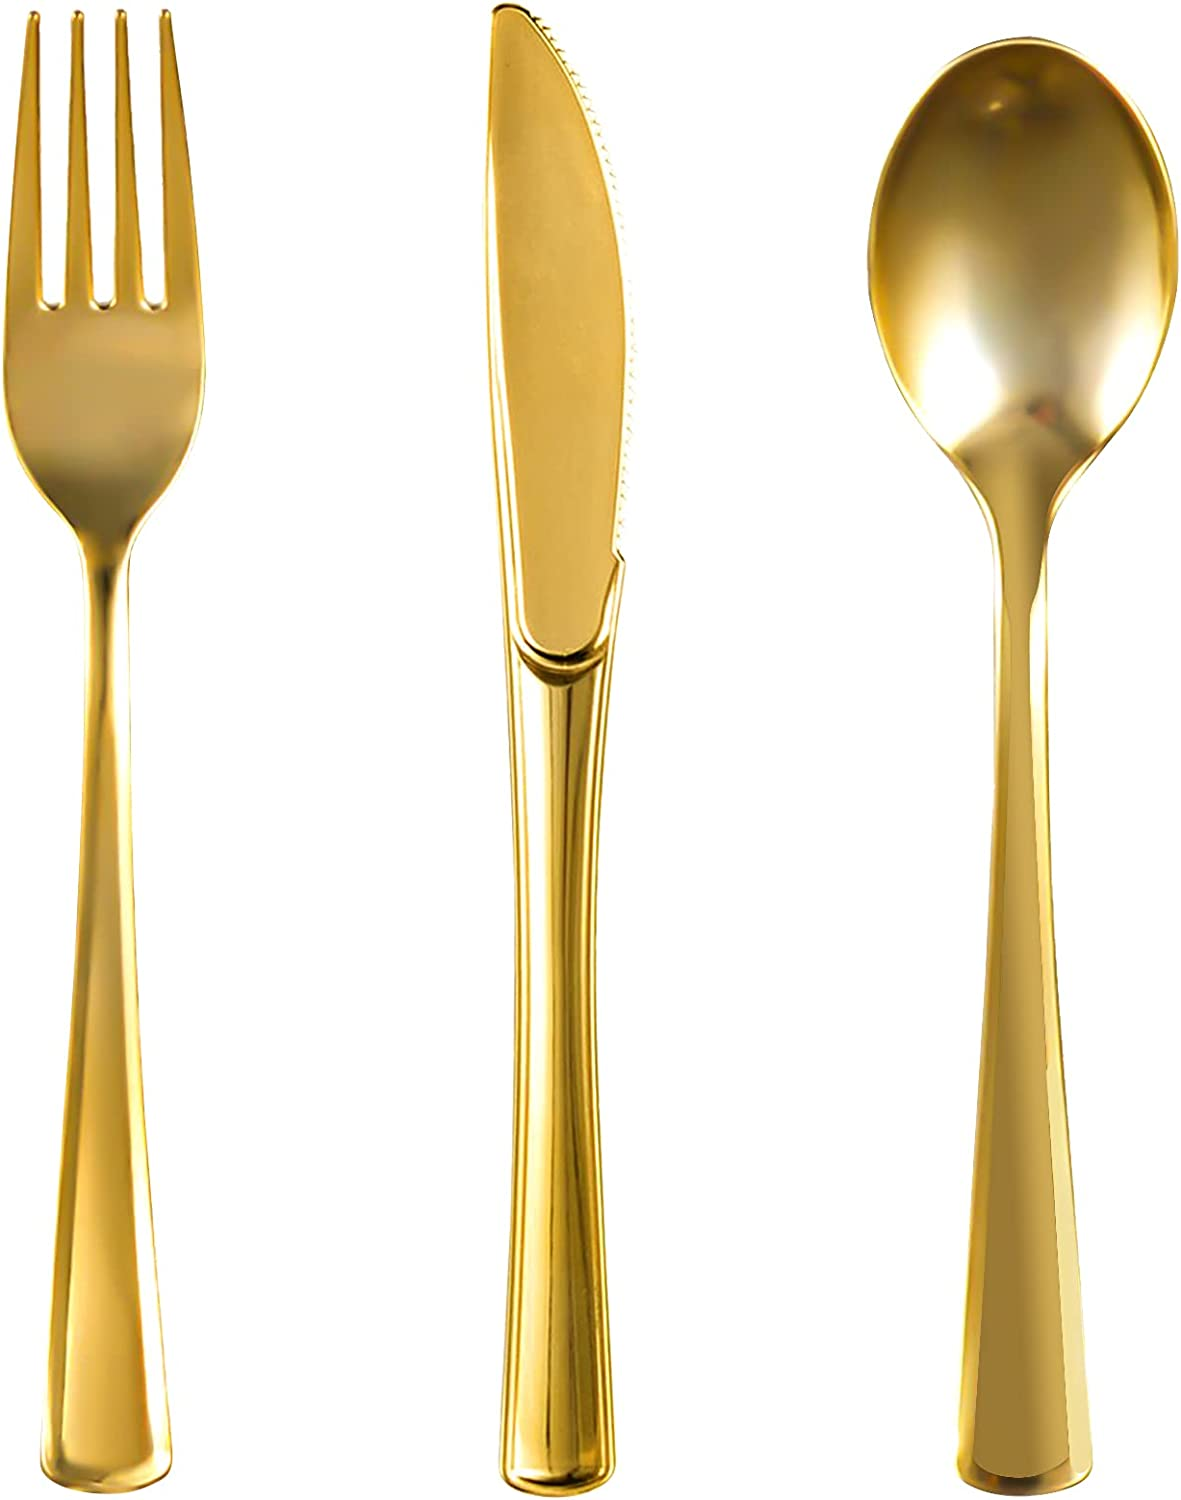 Plastic Silverware Set Disposable - Los Angeles Mall 160 Silver Cutl Pack Max 79% OFF